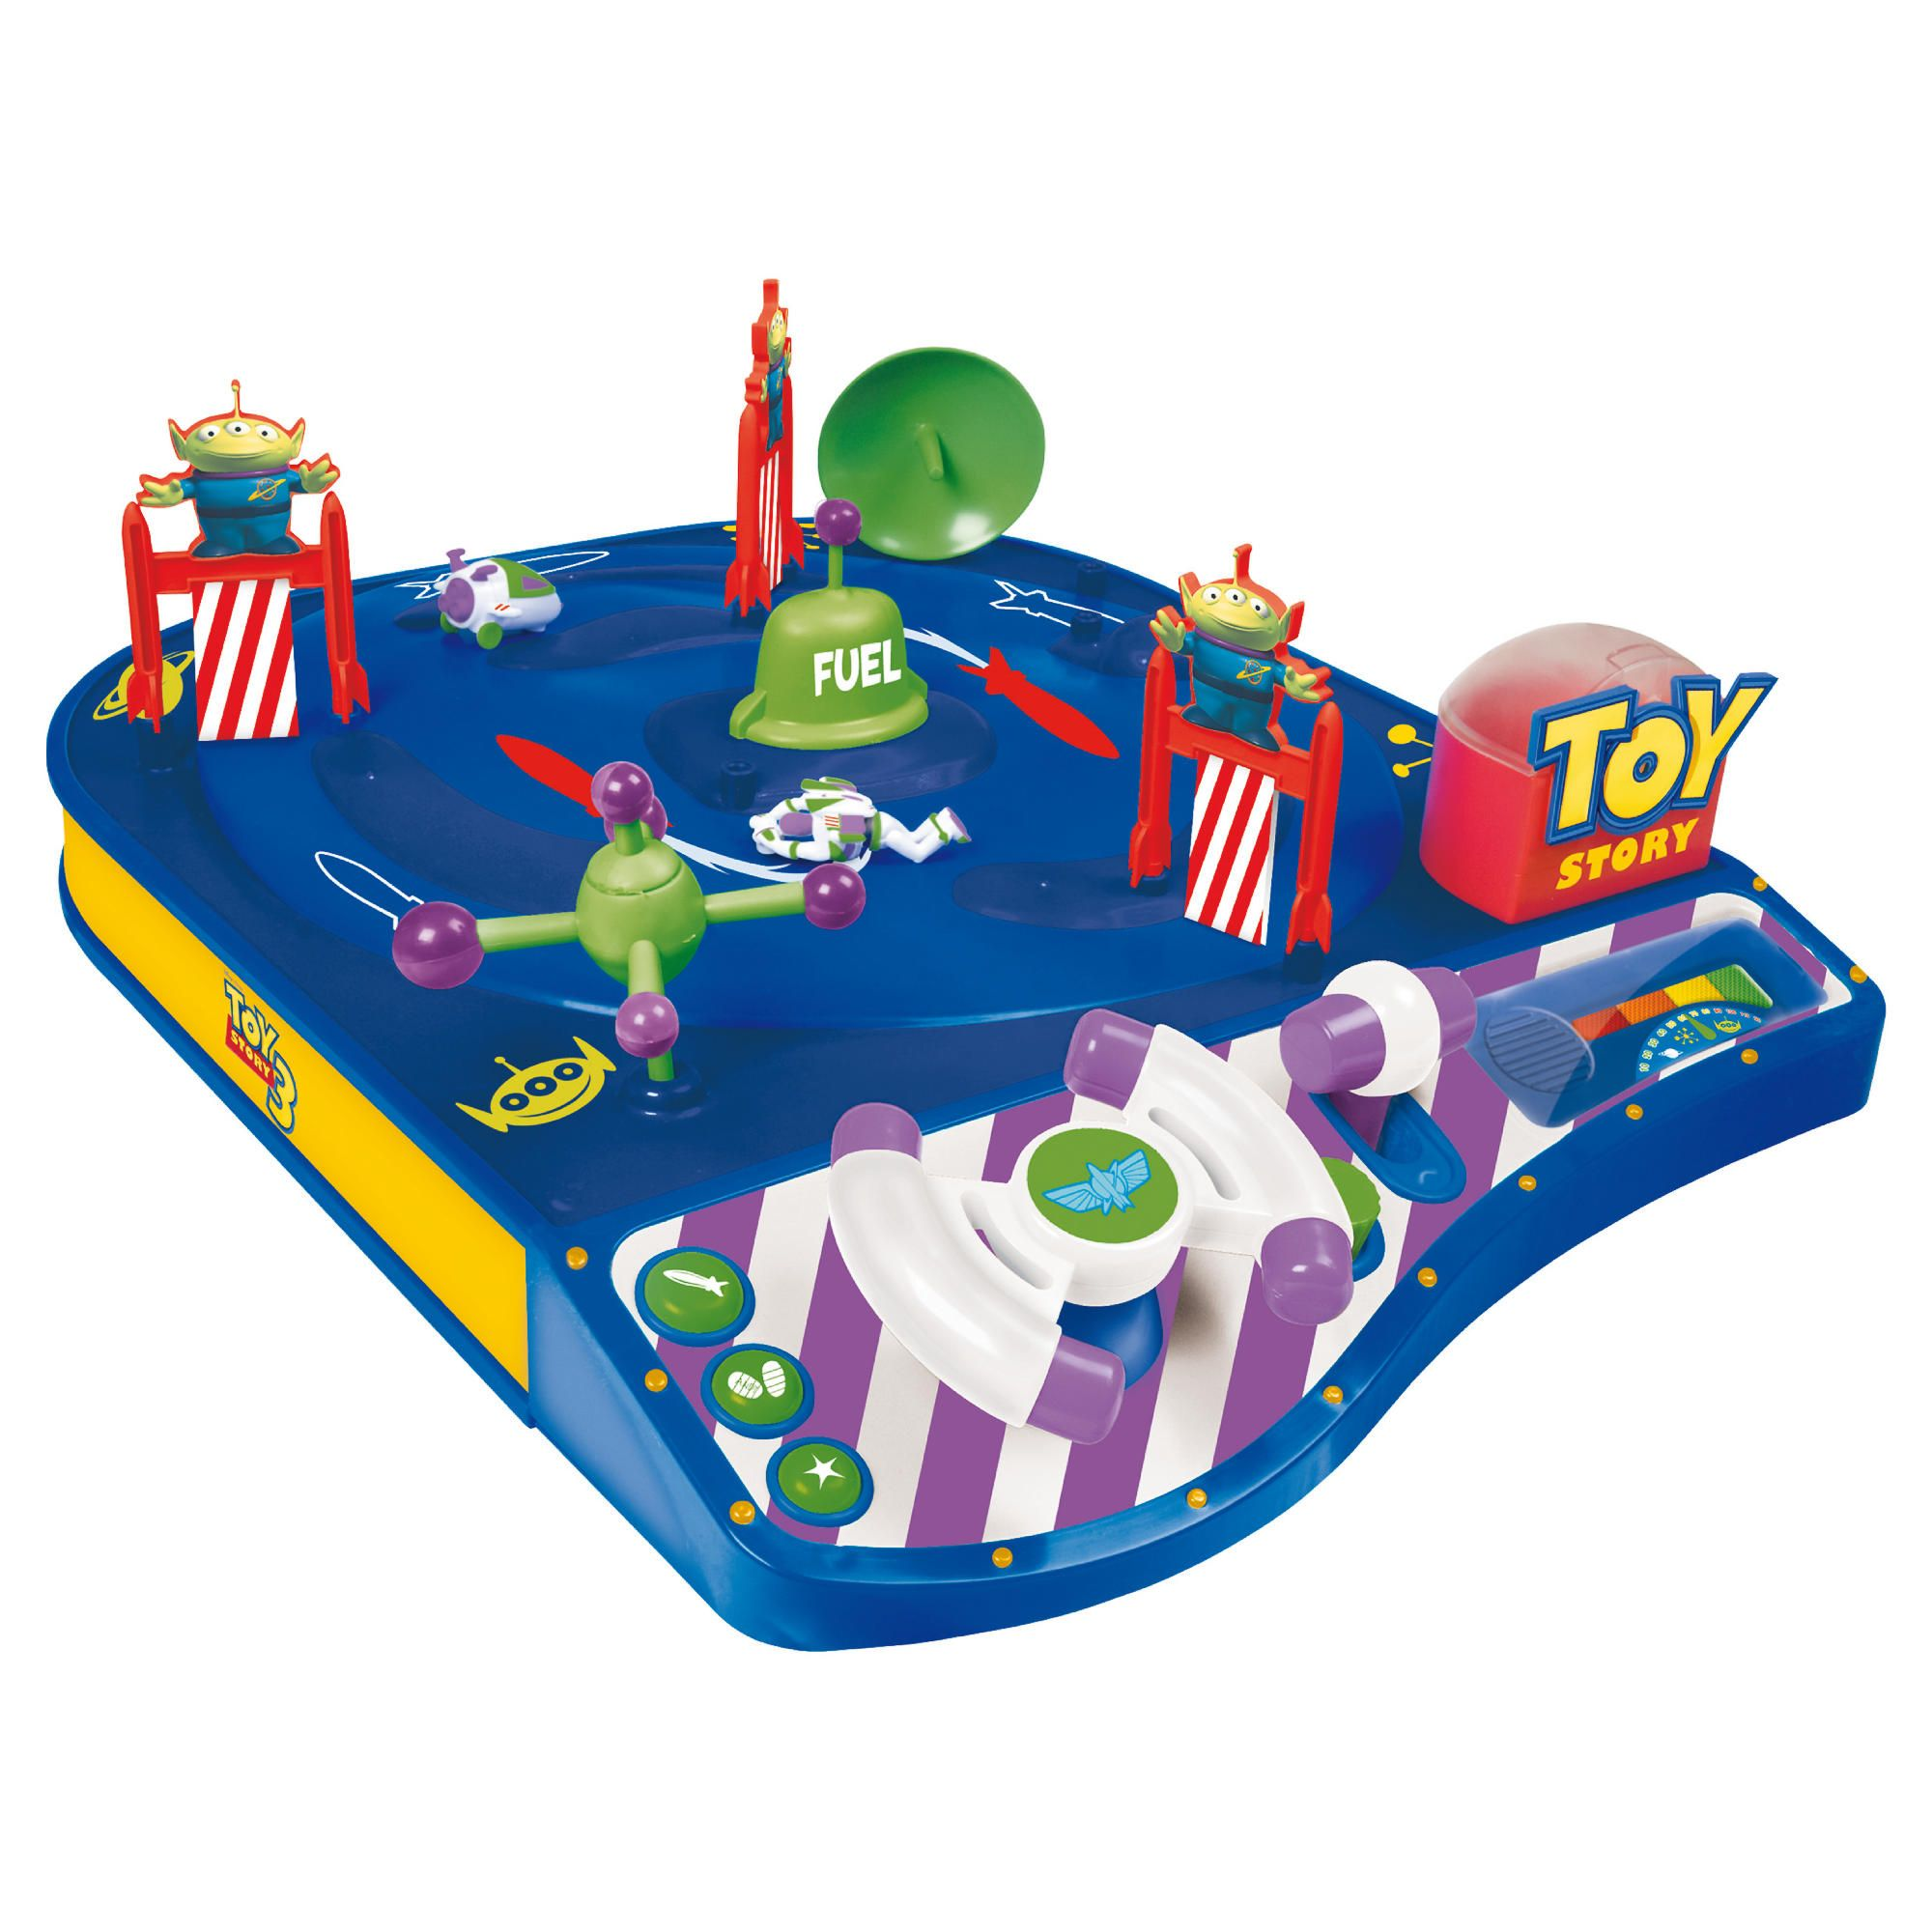 Toy Story Games Play Now : Myshop